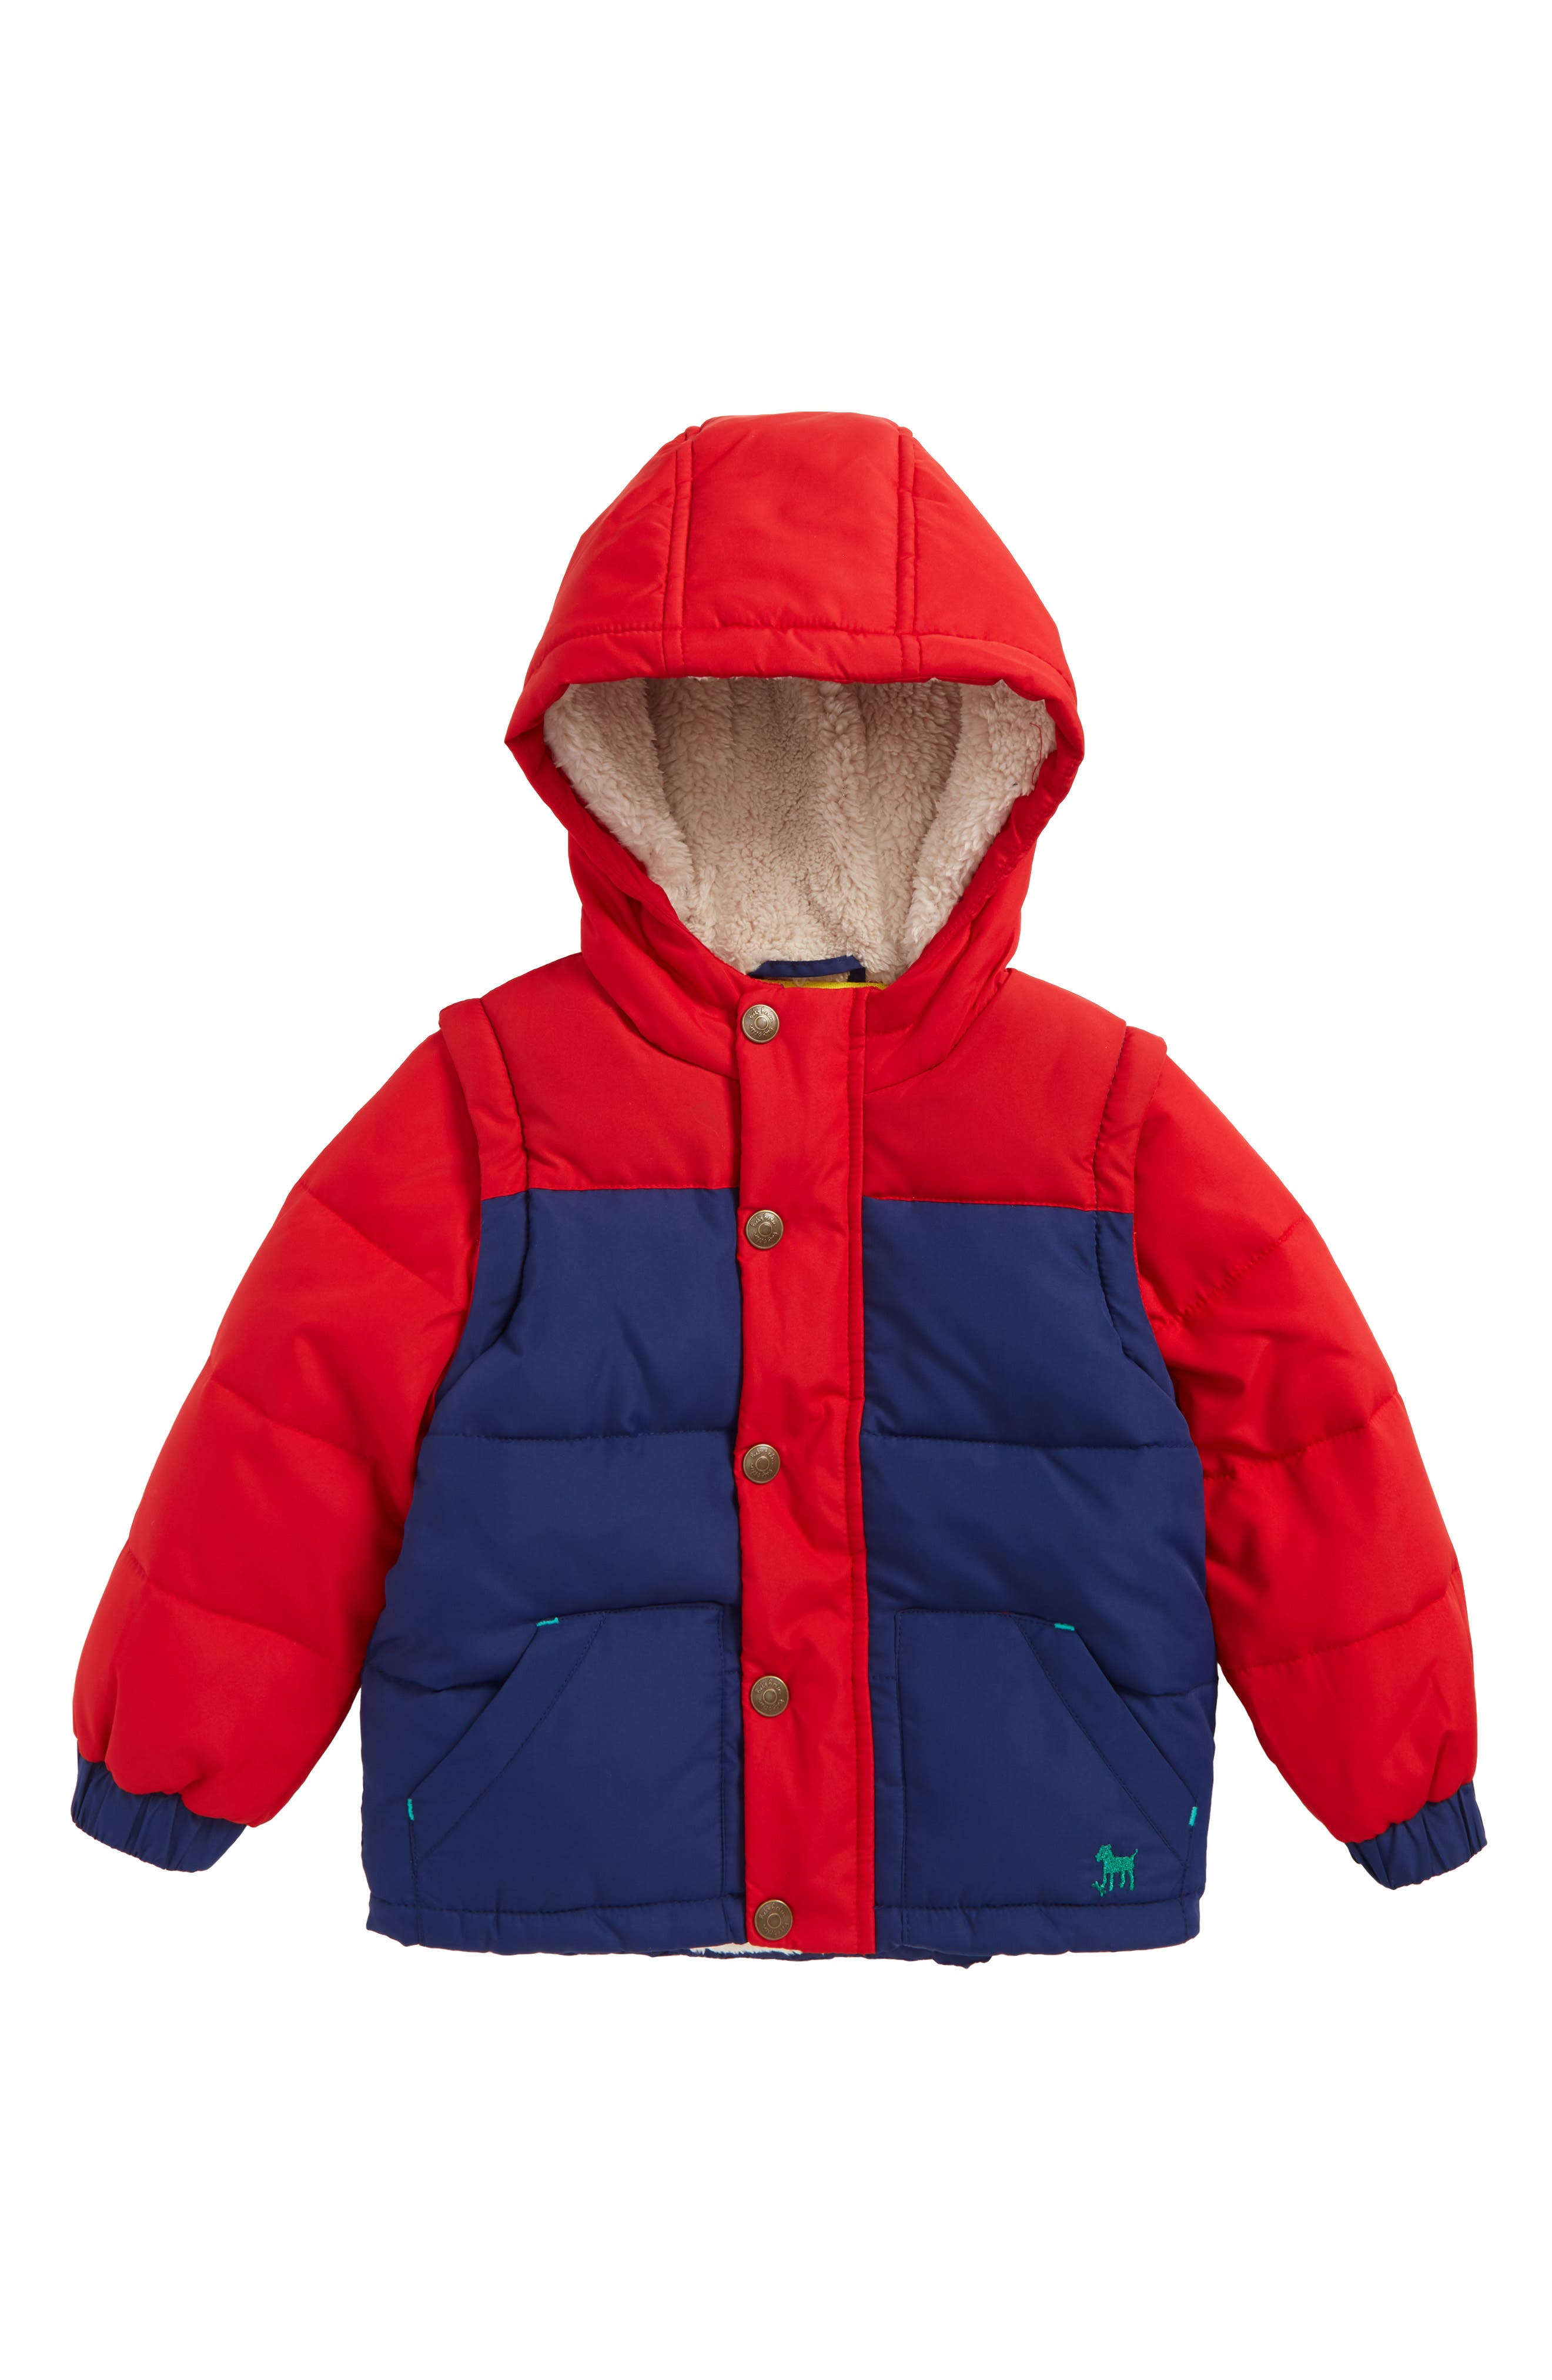 2-in-1 Cozy Jacket,                             Main thumbnail 1, color,                             614